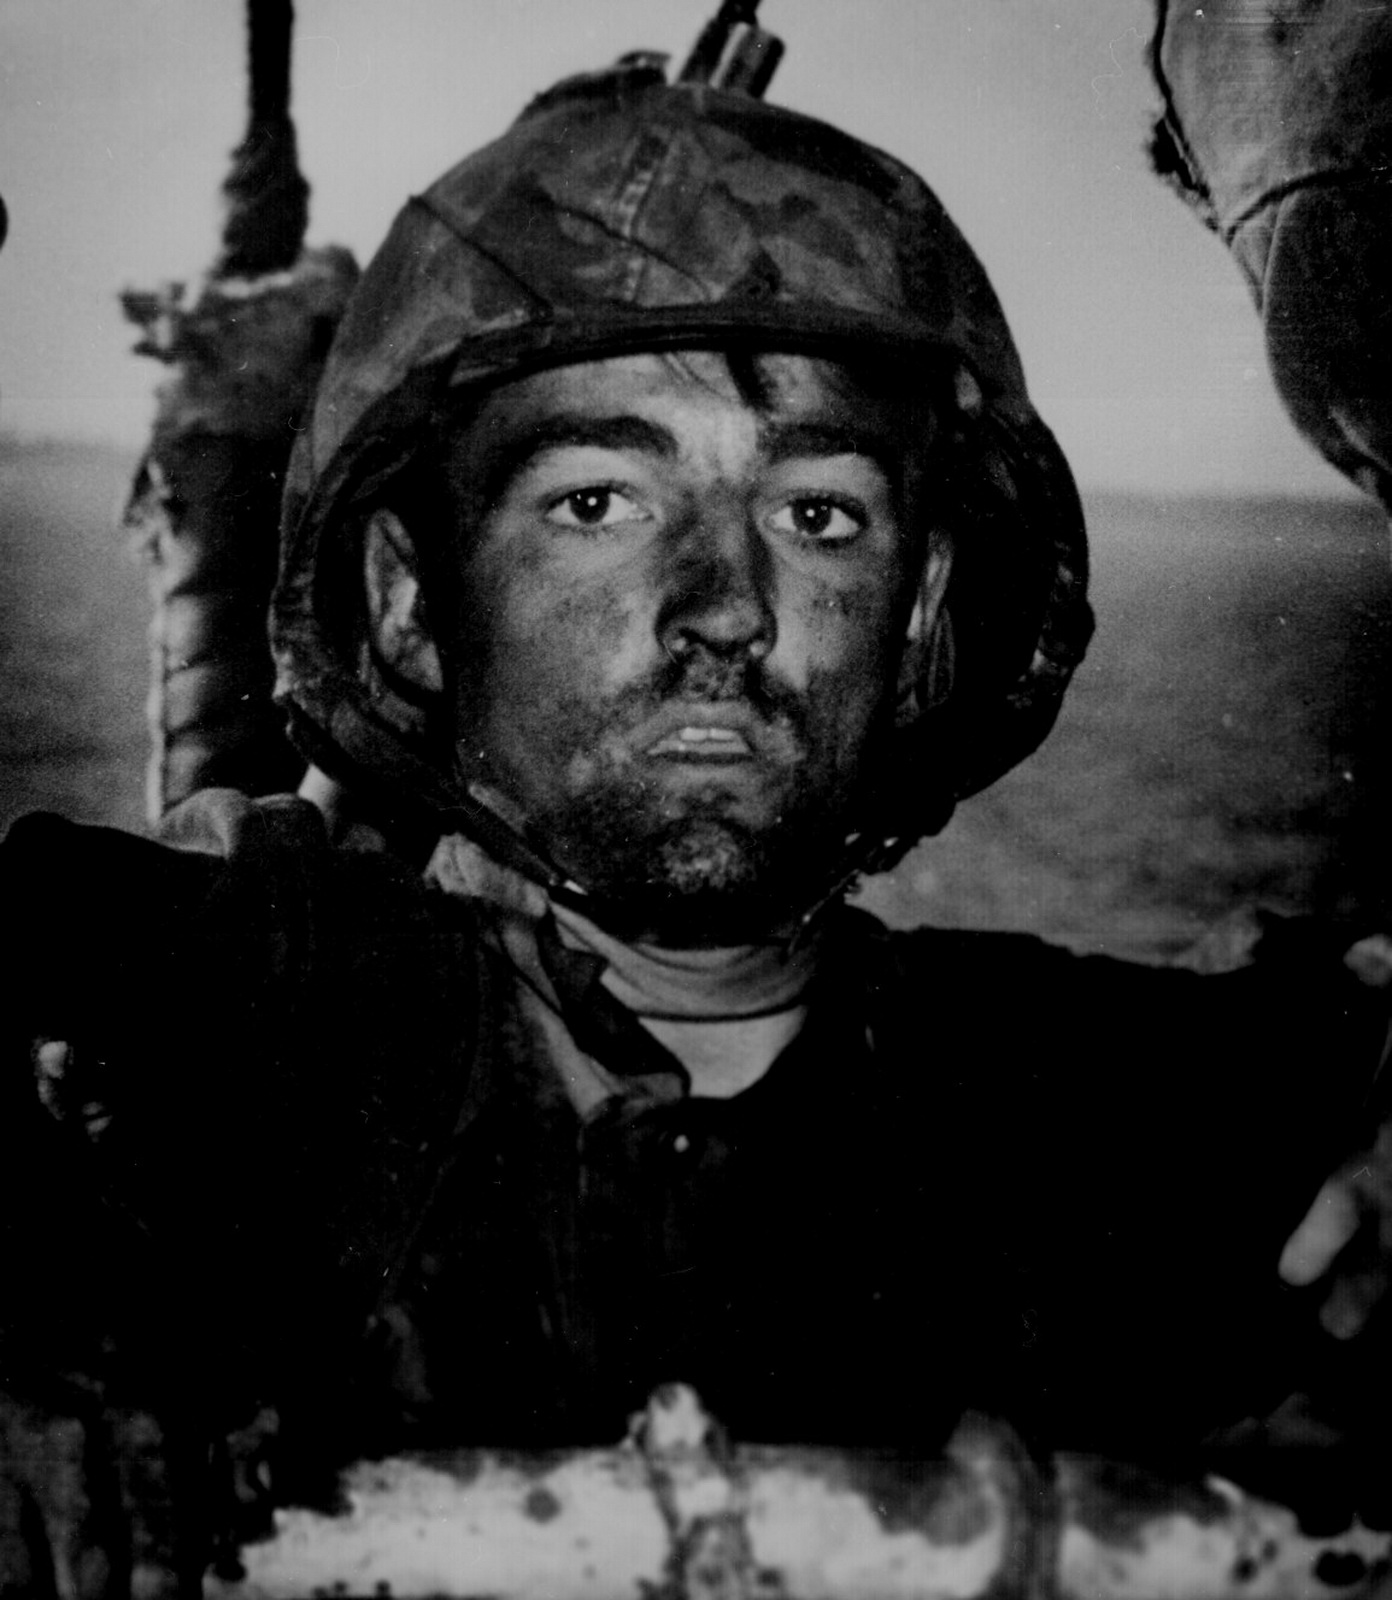 World War II Pictures In Details: A Marine with Thousand Yard Stare